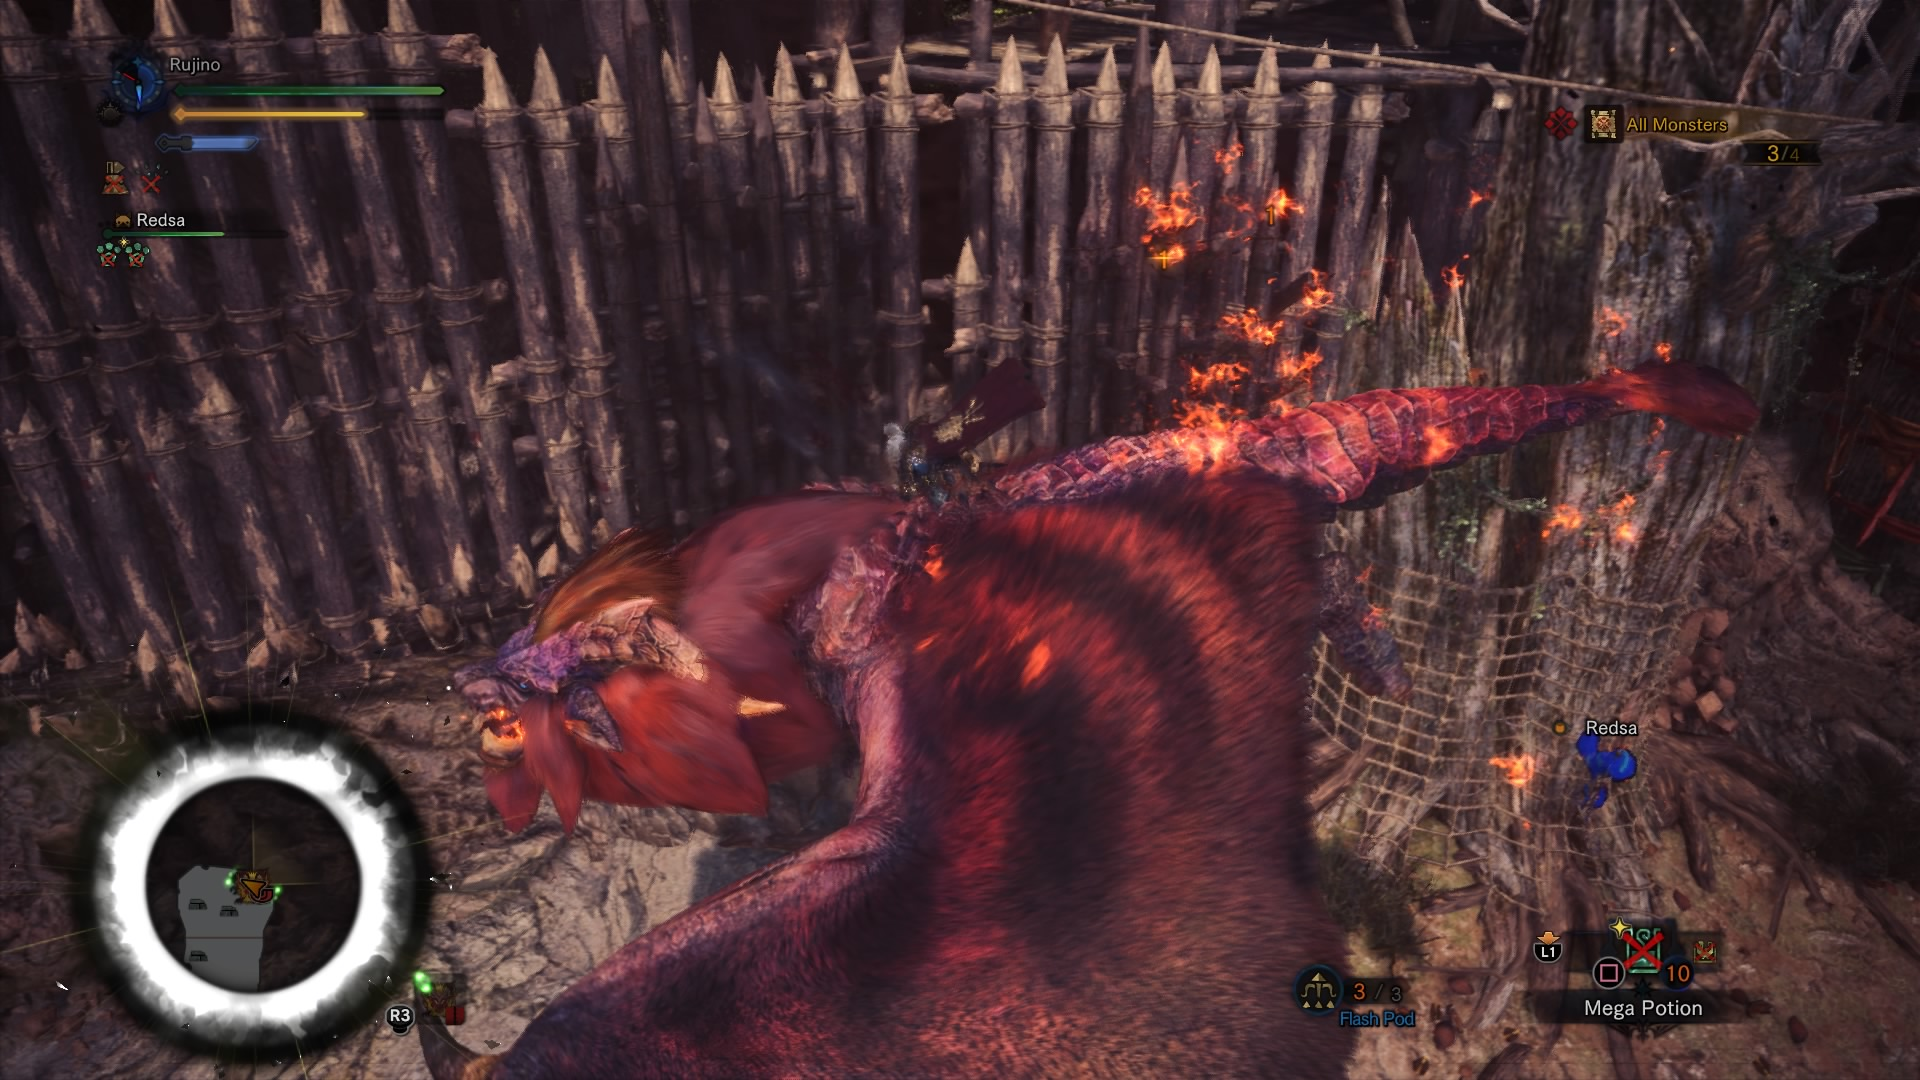 MHW - Events - DMC - Taking Teostra.jpg